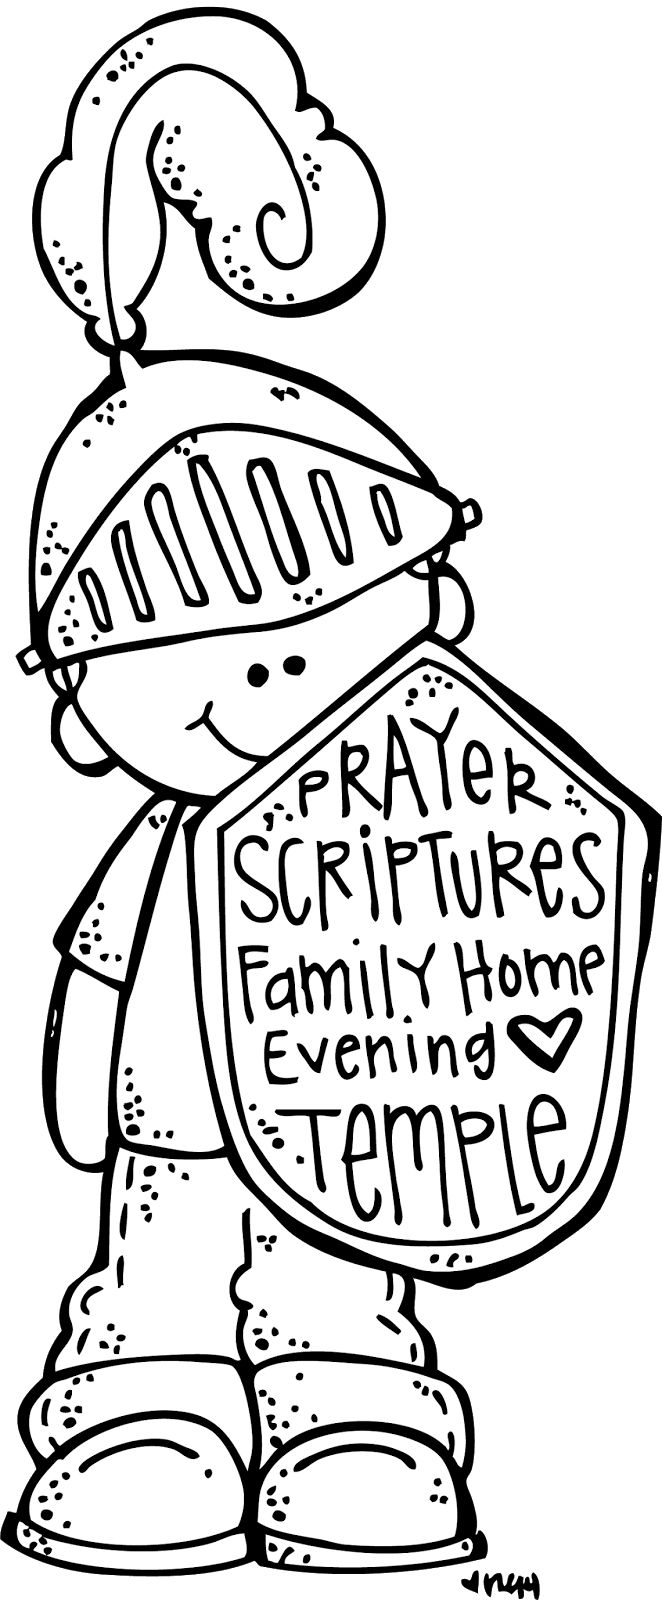 God hears our prayers coloring pages ~ Evening prayer clipart - Clipground